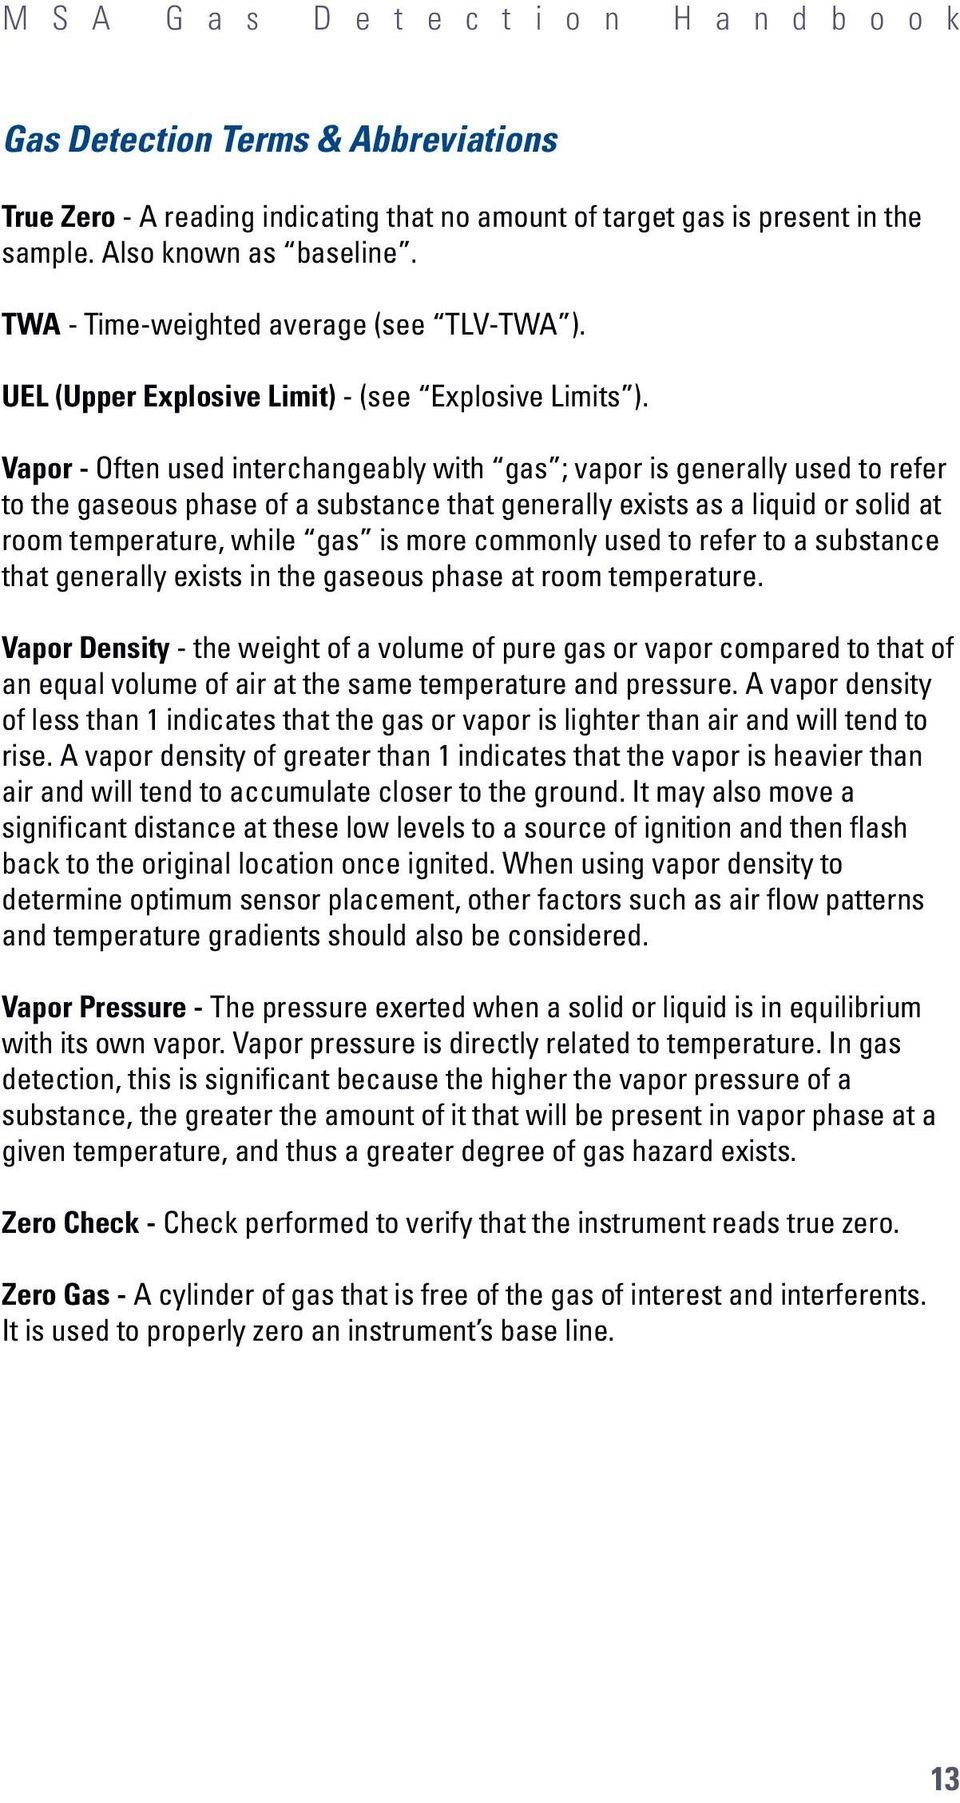 Vapor - Often used interchangeably with gas ; vapor is generally used to refer to the gaseous phase of a substance that generally exists as a liquid or solid at room temperature, while gas is more